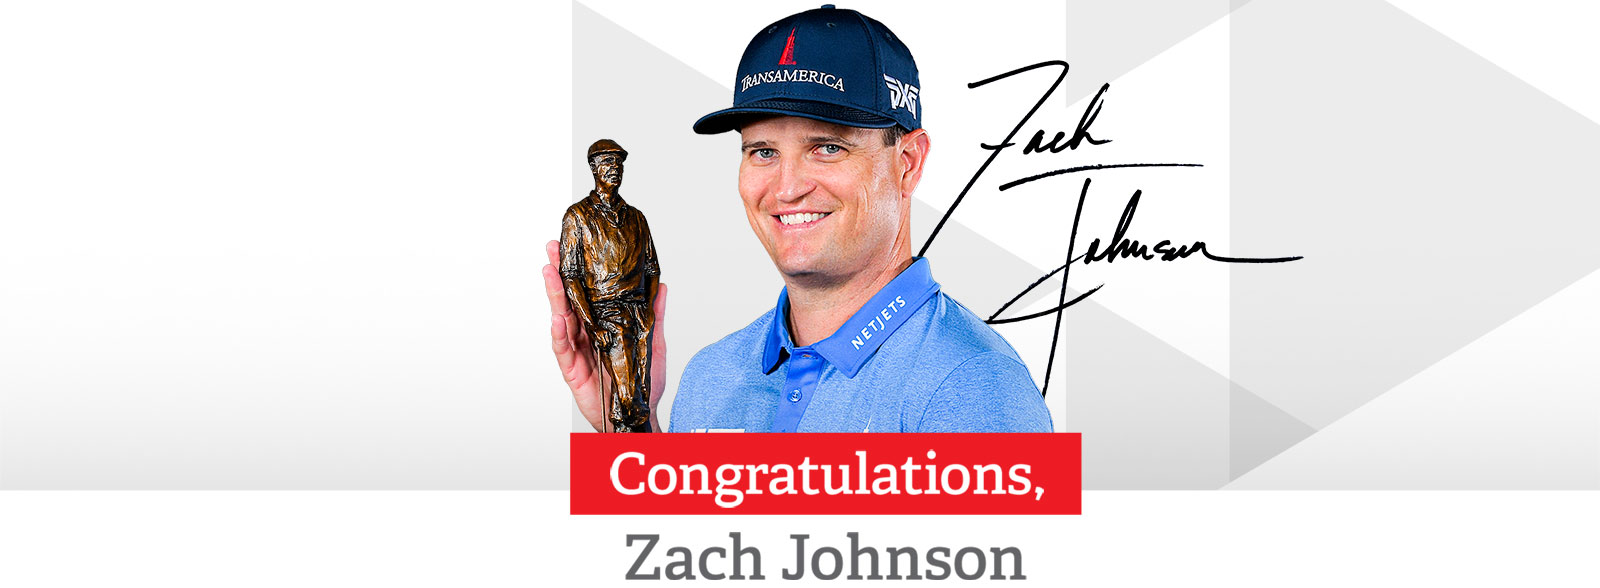 2020 Payne Stewart Award recipient Zach Johnson